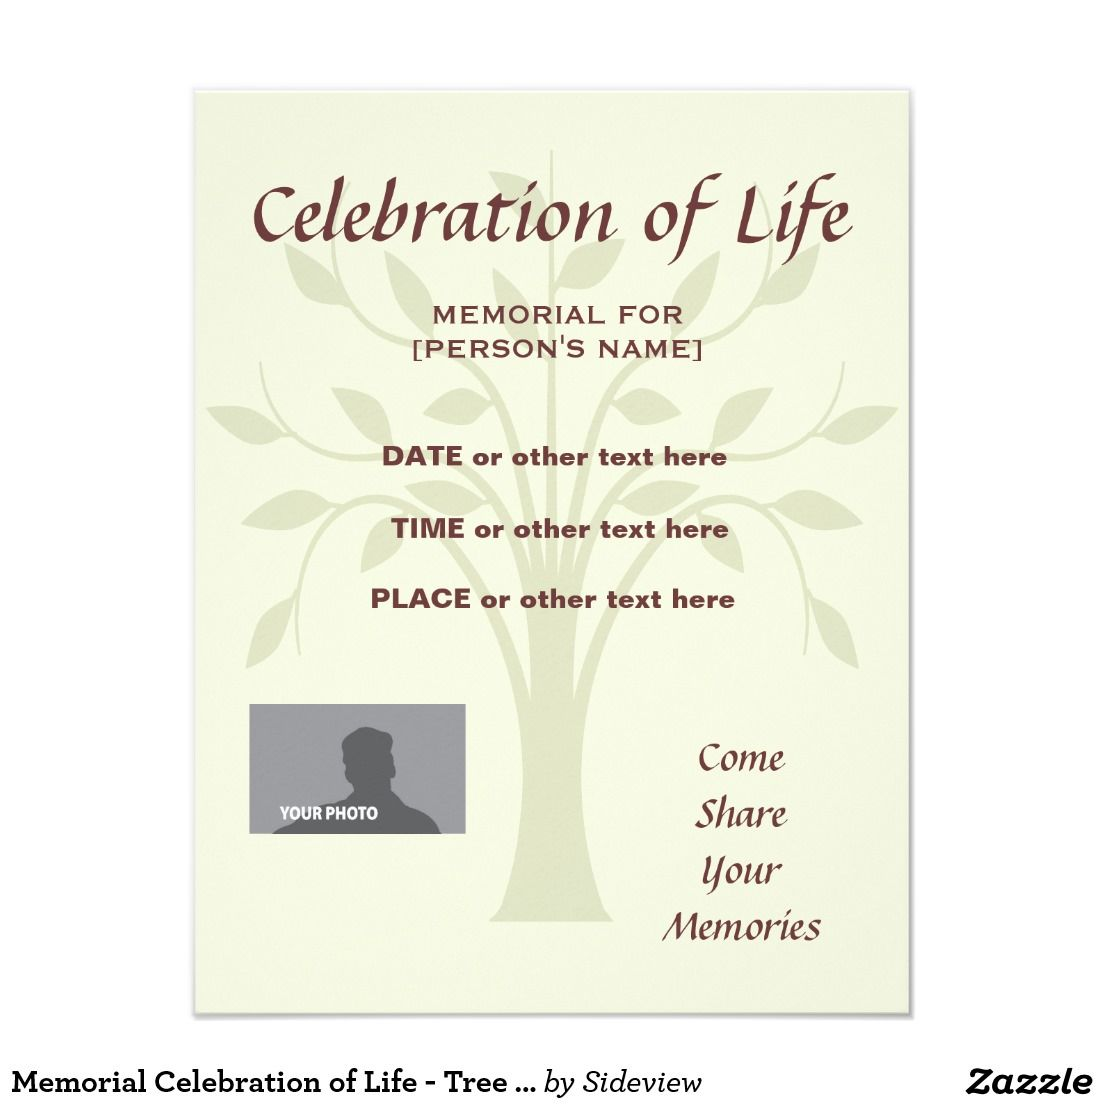 Memorial Celebration Of Life Burgundy Invitatation Card  Celebrations